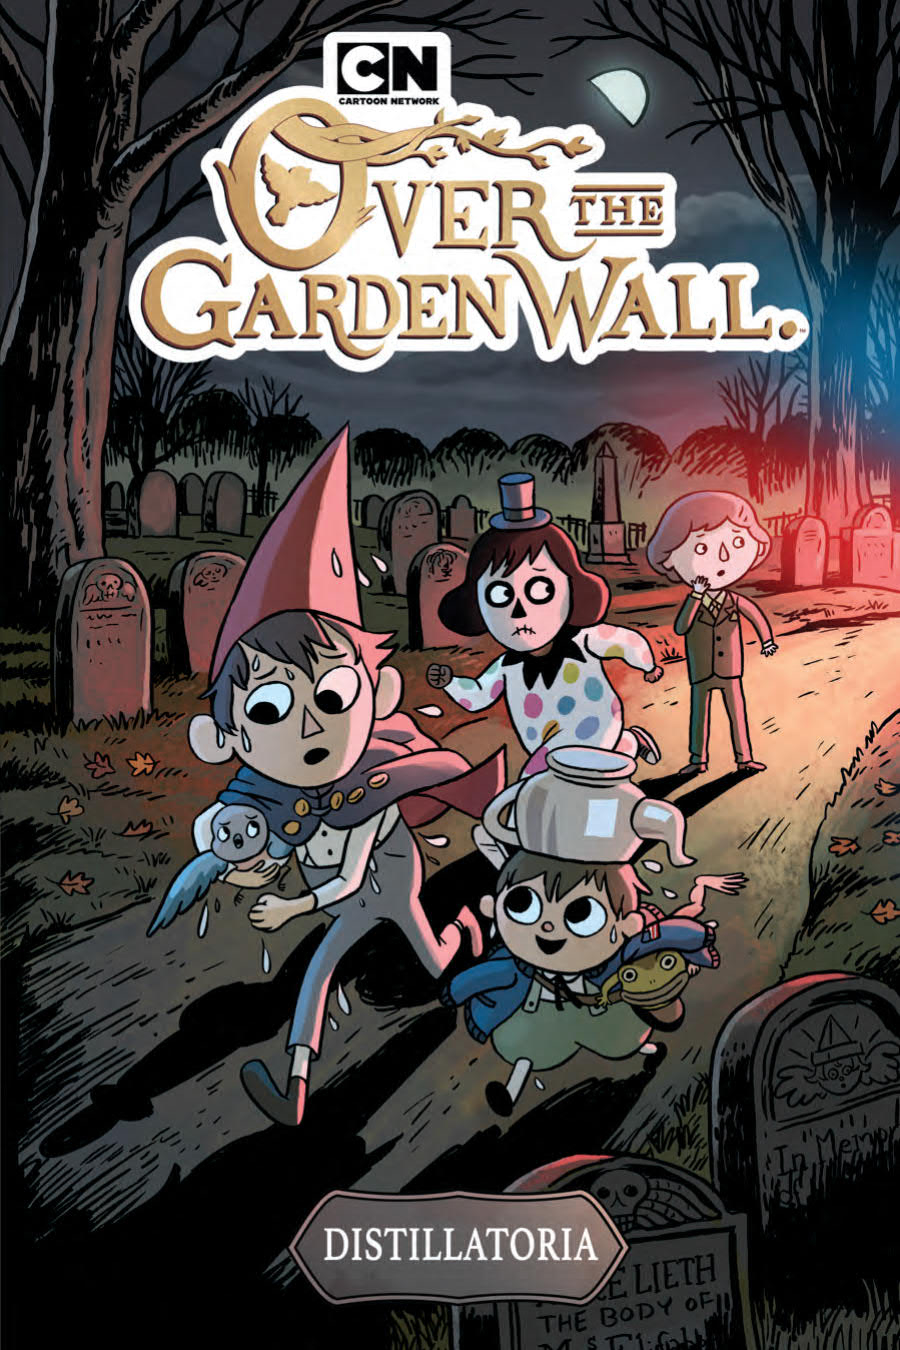 OVER GARDEN WALL ORIGINAL GN VOL 01 DISTILLATORIA